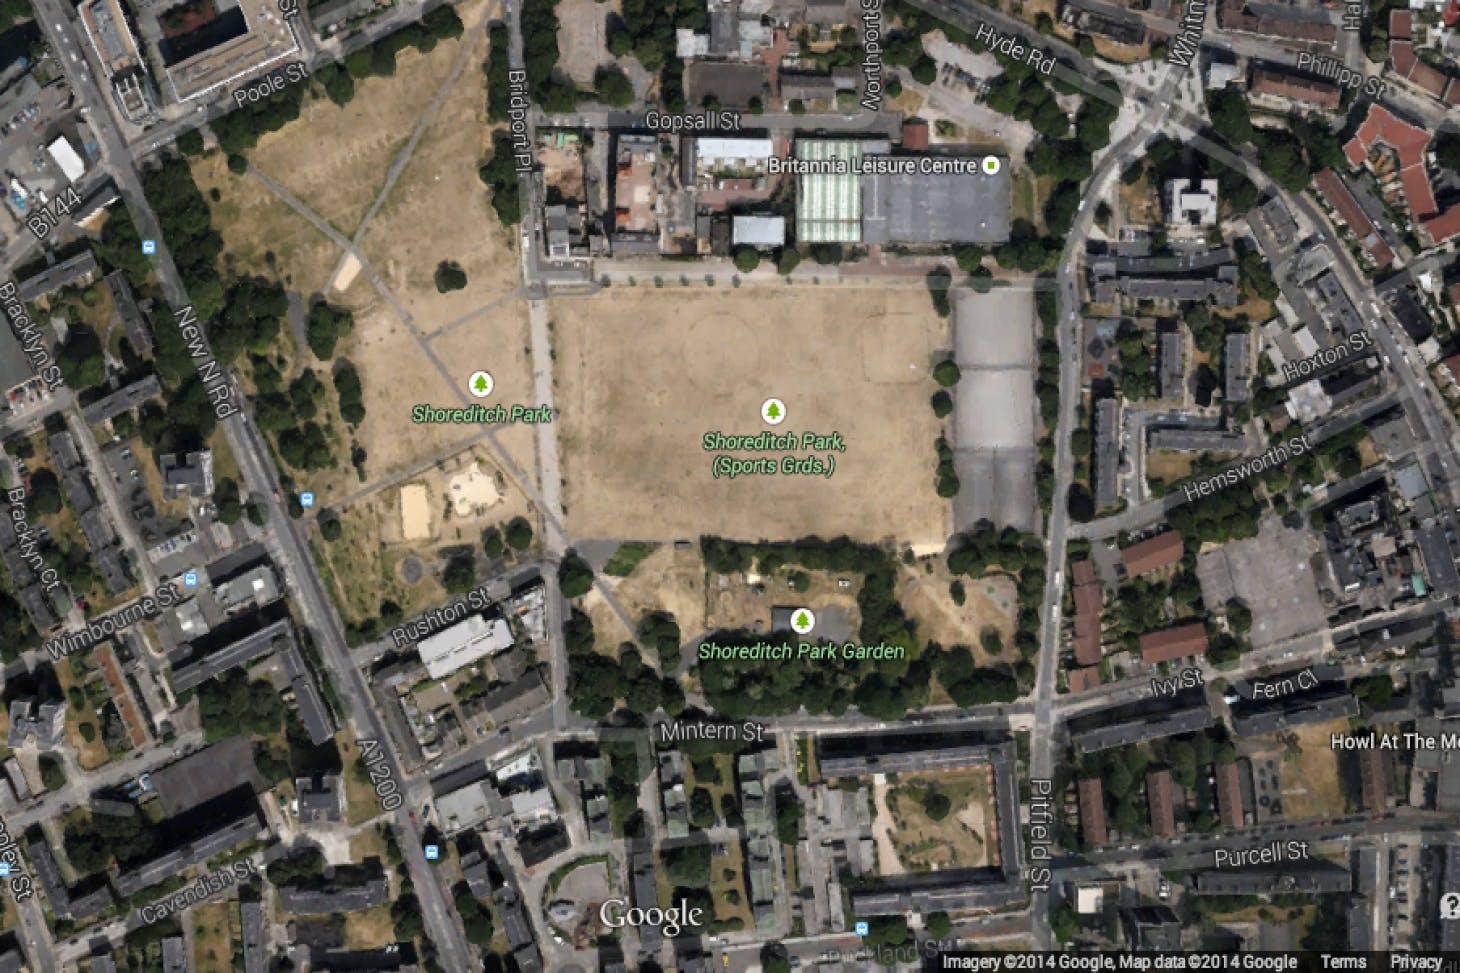 Shoreditch Park Union | Grass rugby pitch